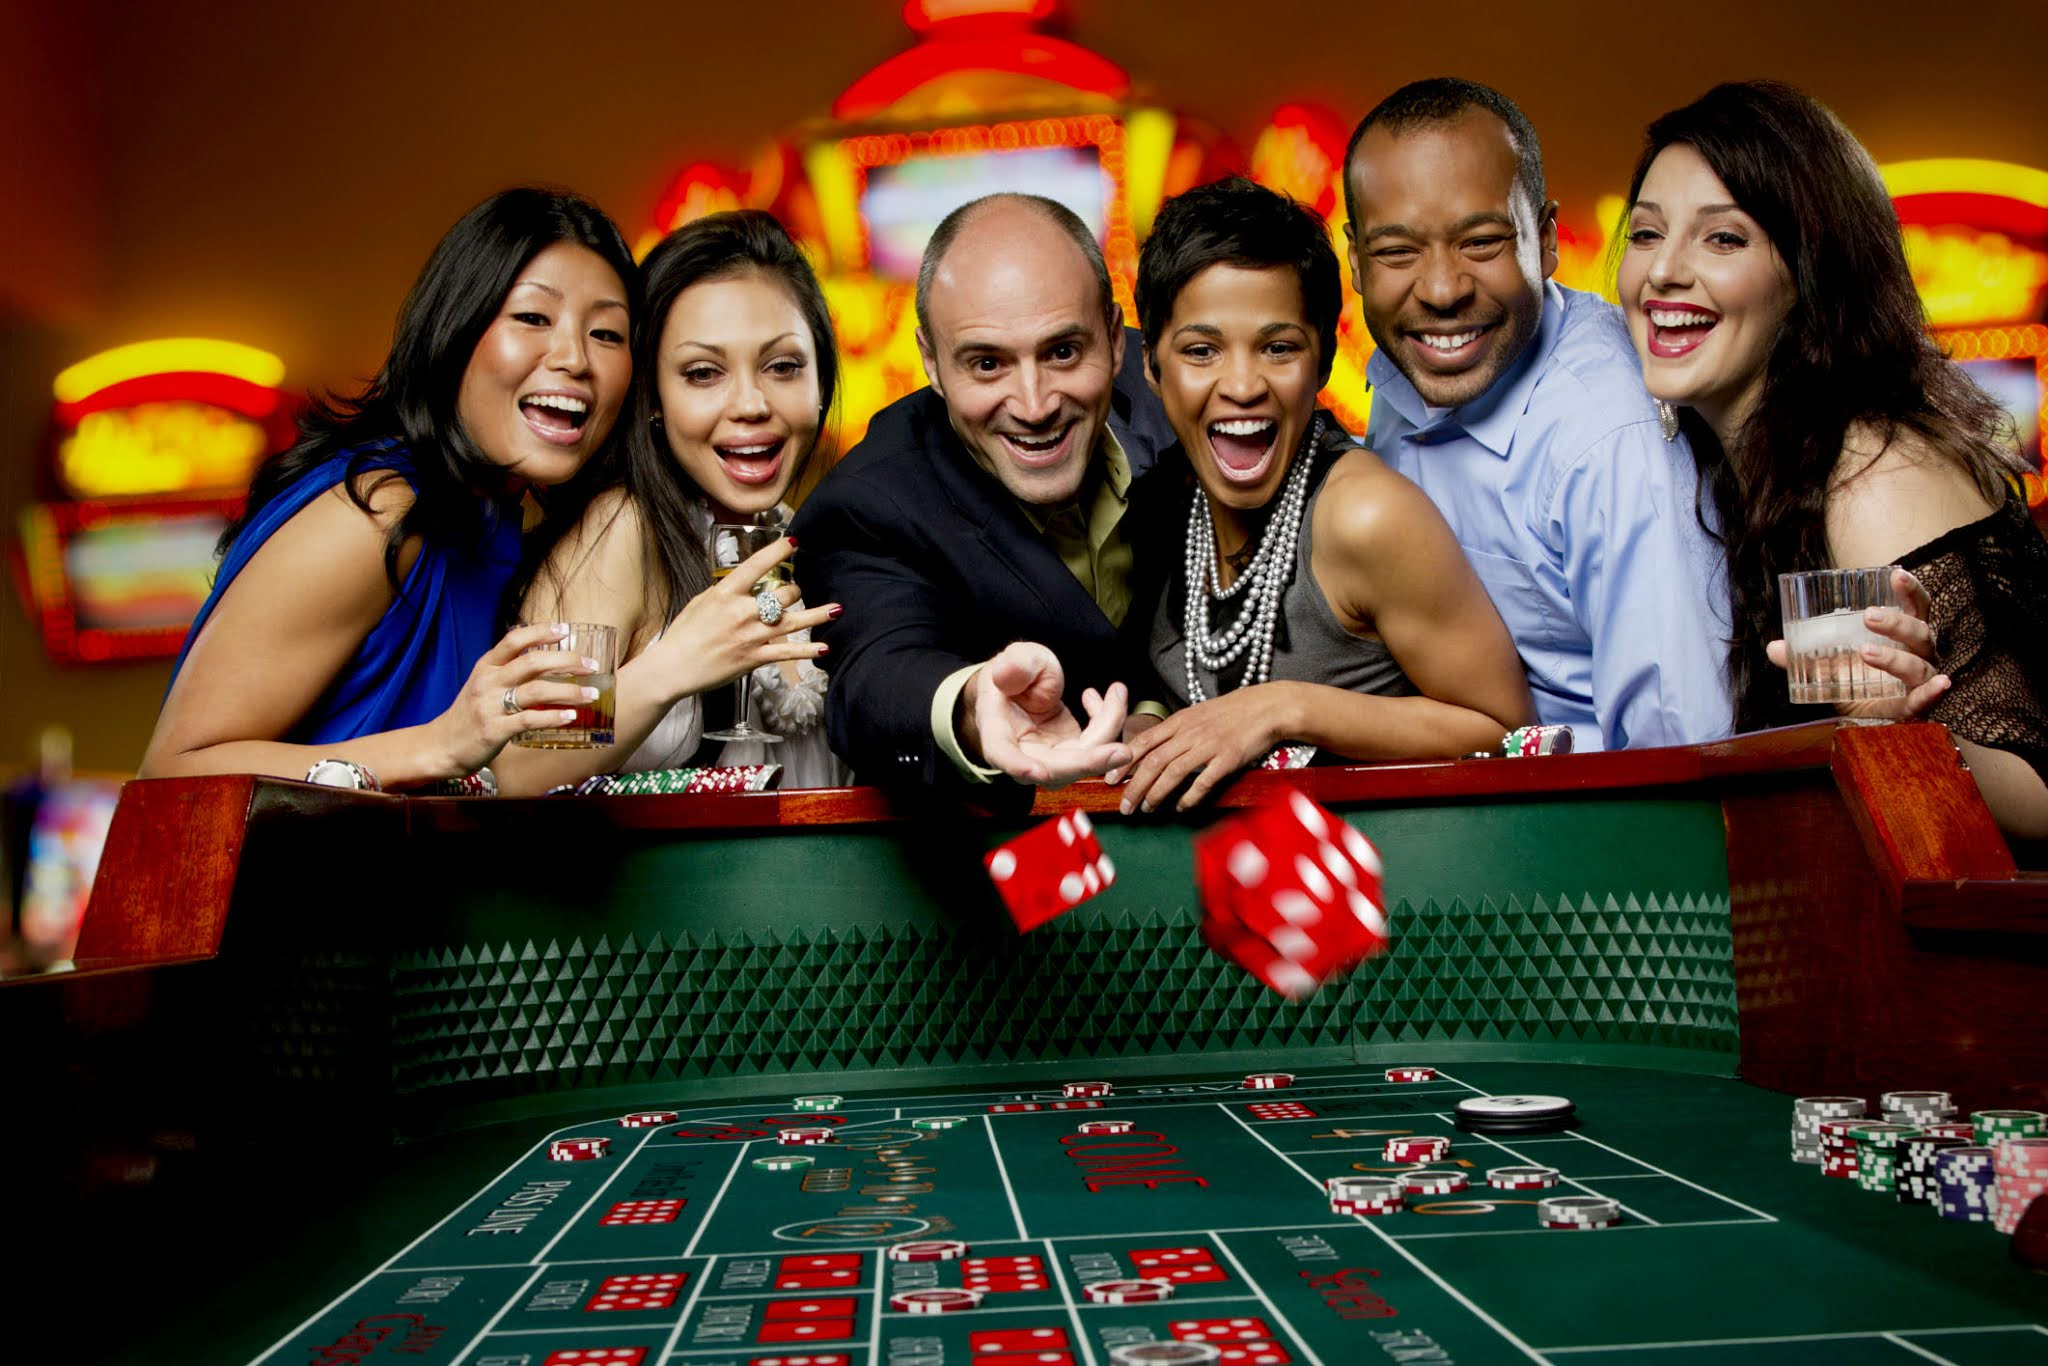 Which games do you like to play with in online casinos?